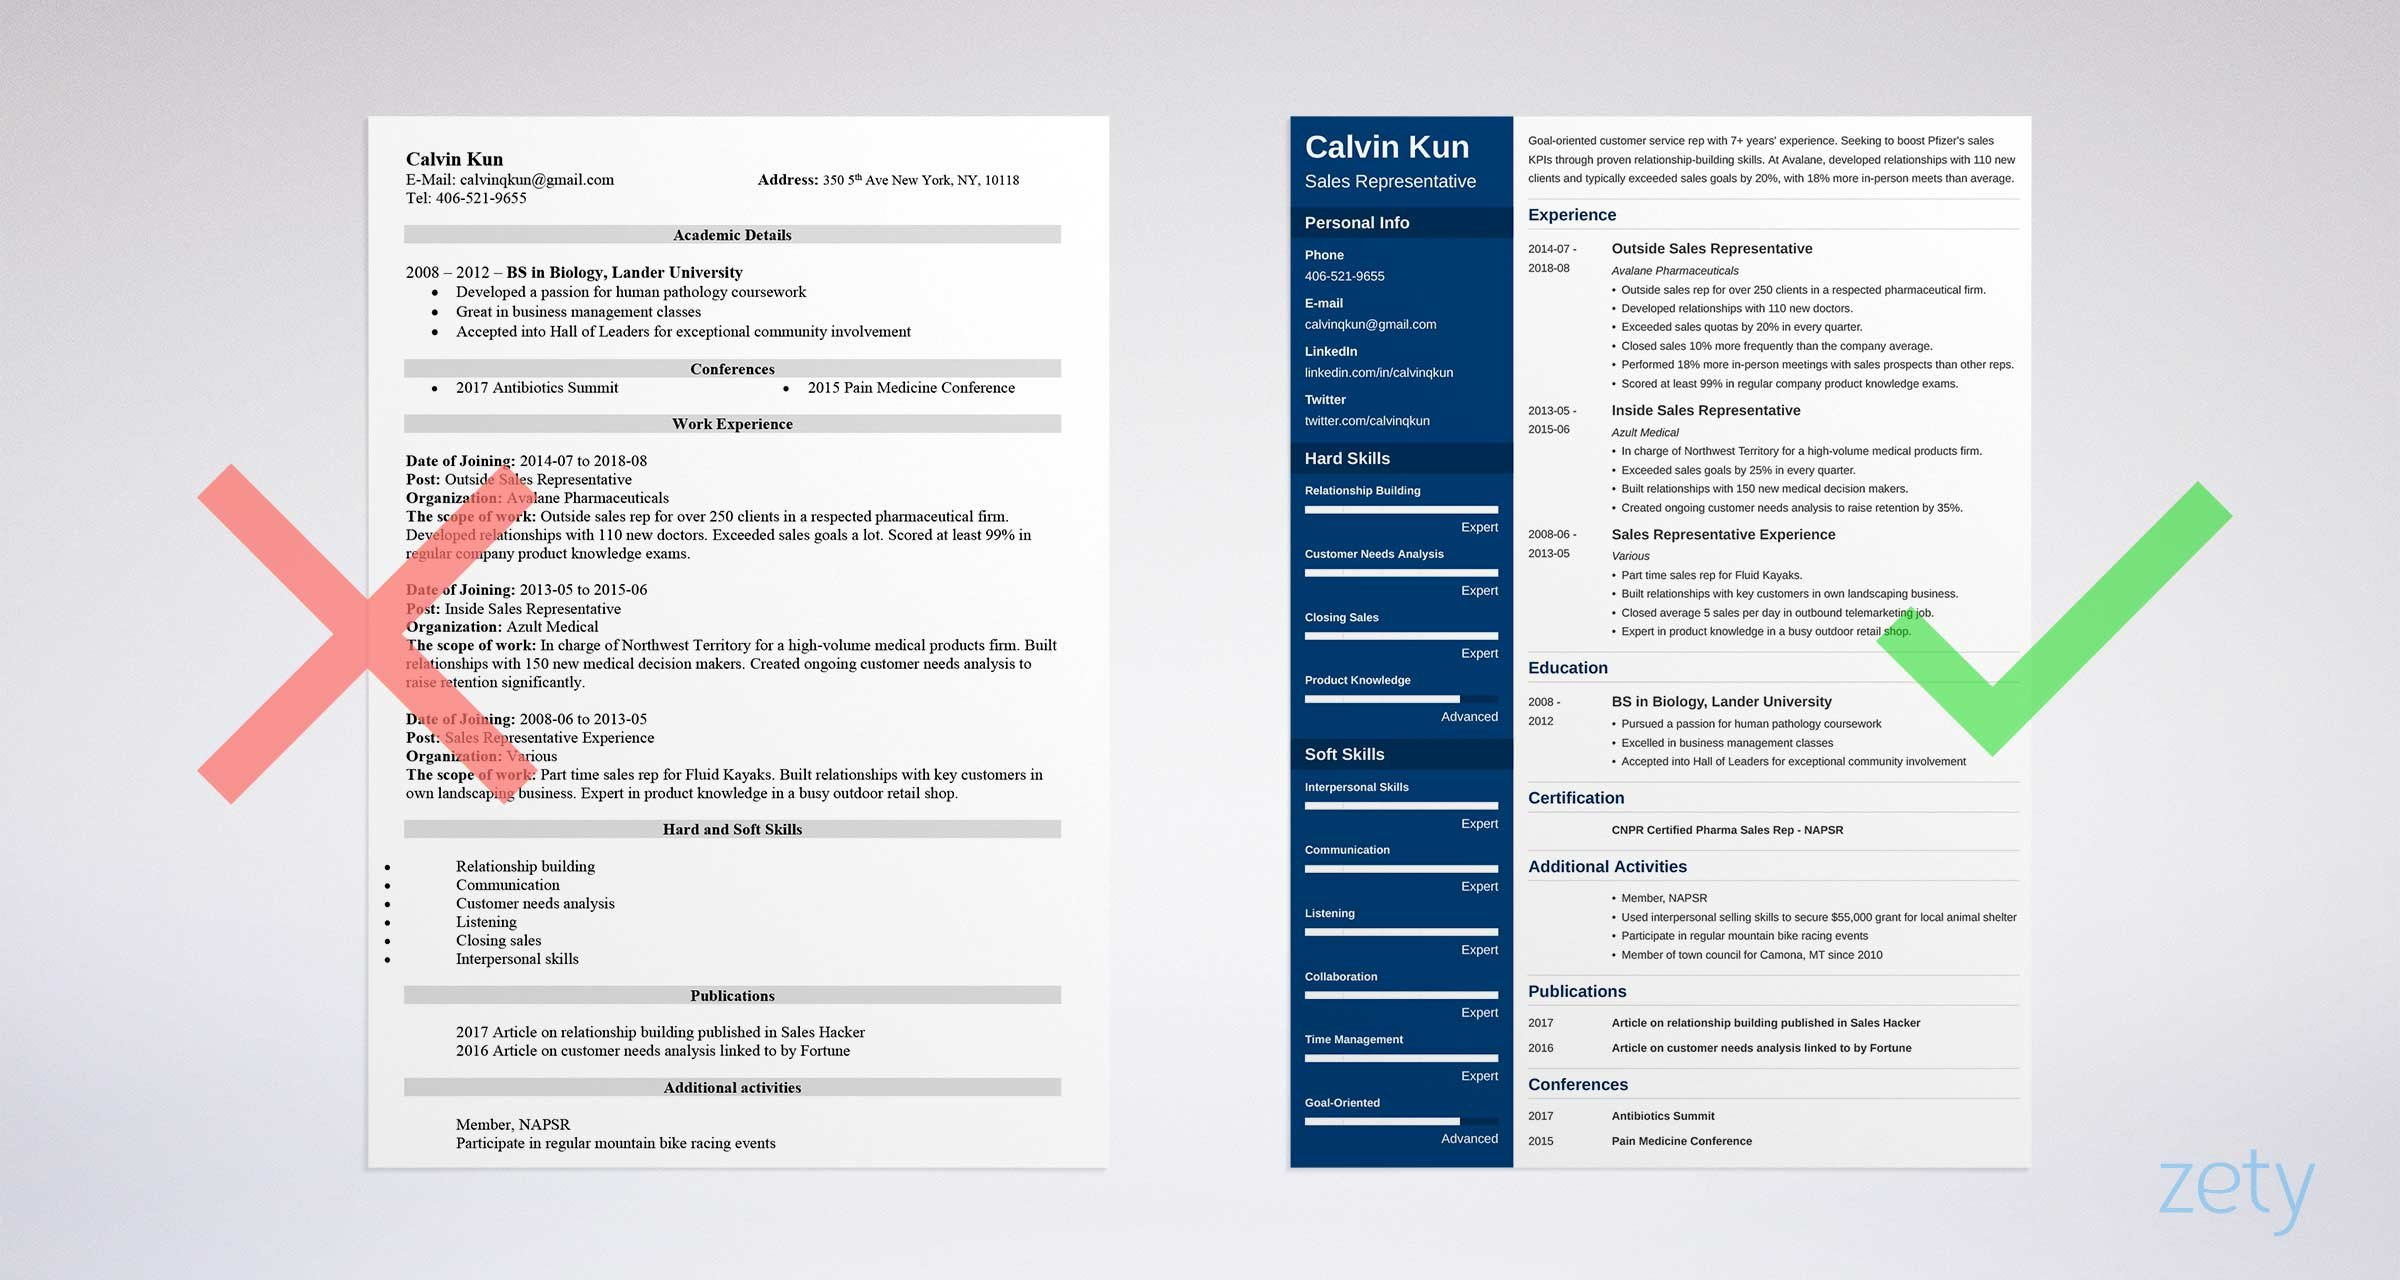 Attractive Sales Representative Resume: Sample U0026 Writing Guide [20+ Examples]